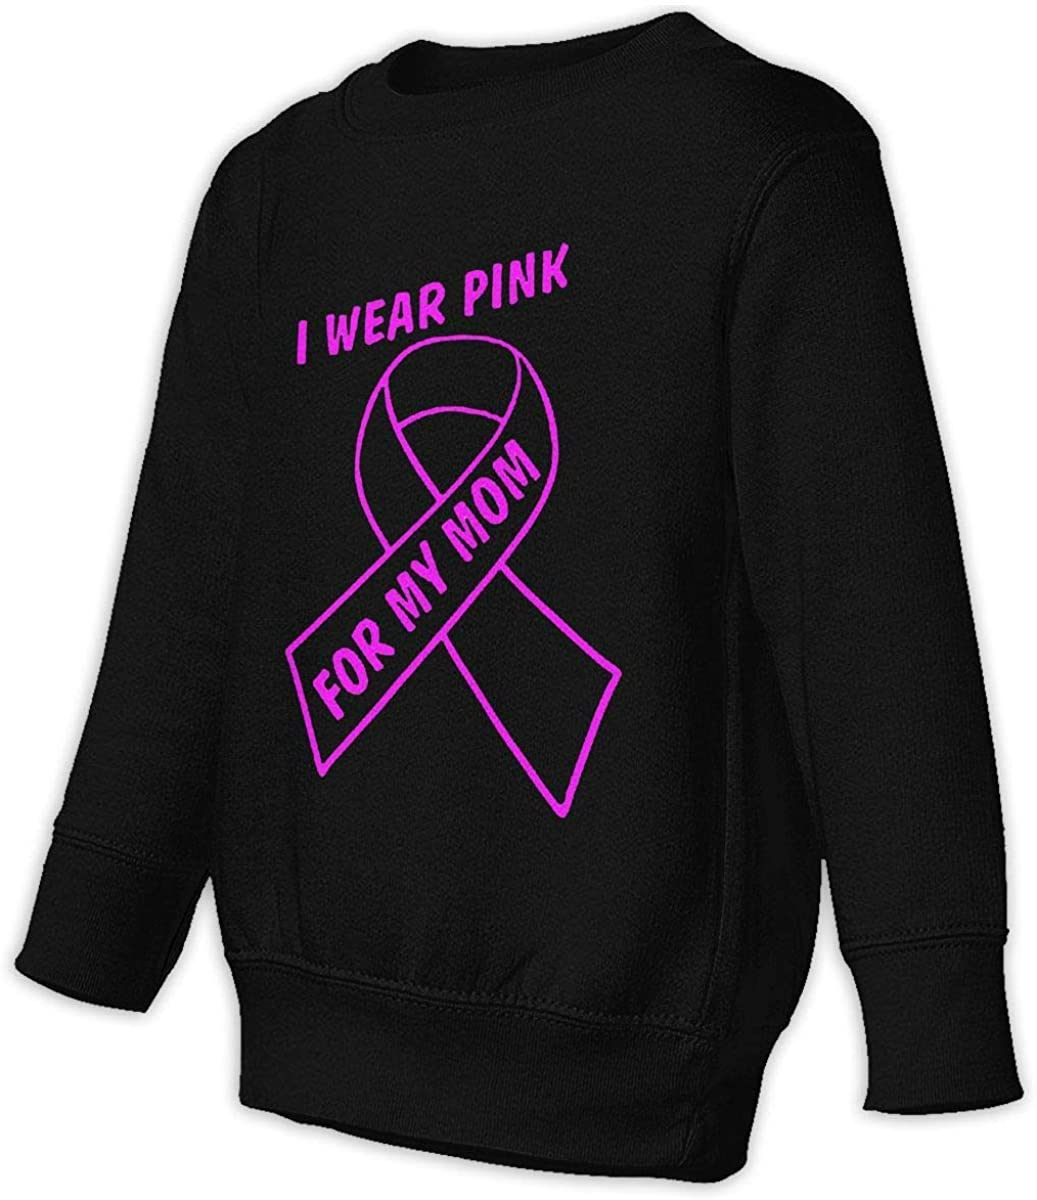 wudici I Wear Pink for My Mom Boys Girls Pullover Sweaters Crewneck Sweatshirts Clothes for 2-6 Years Old Children